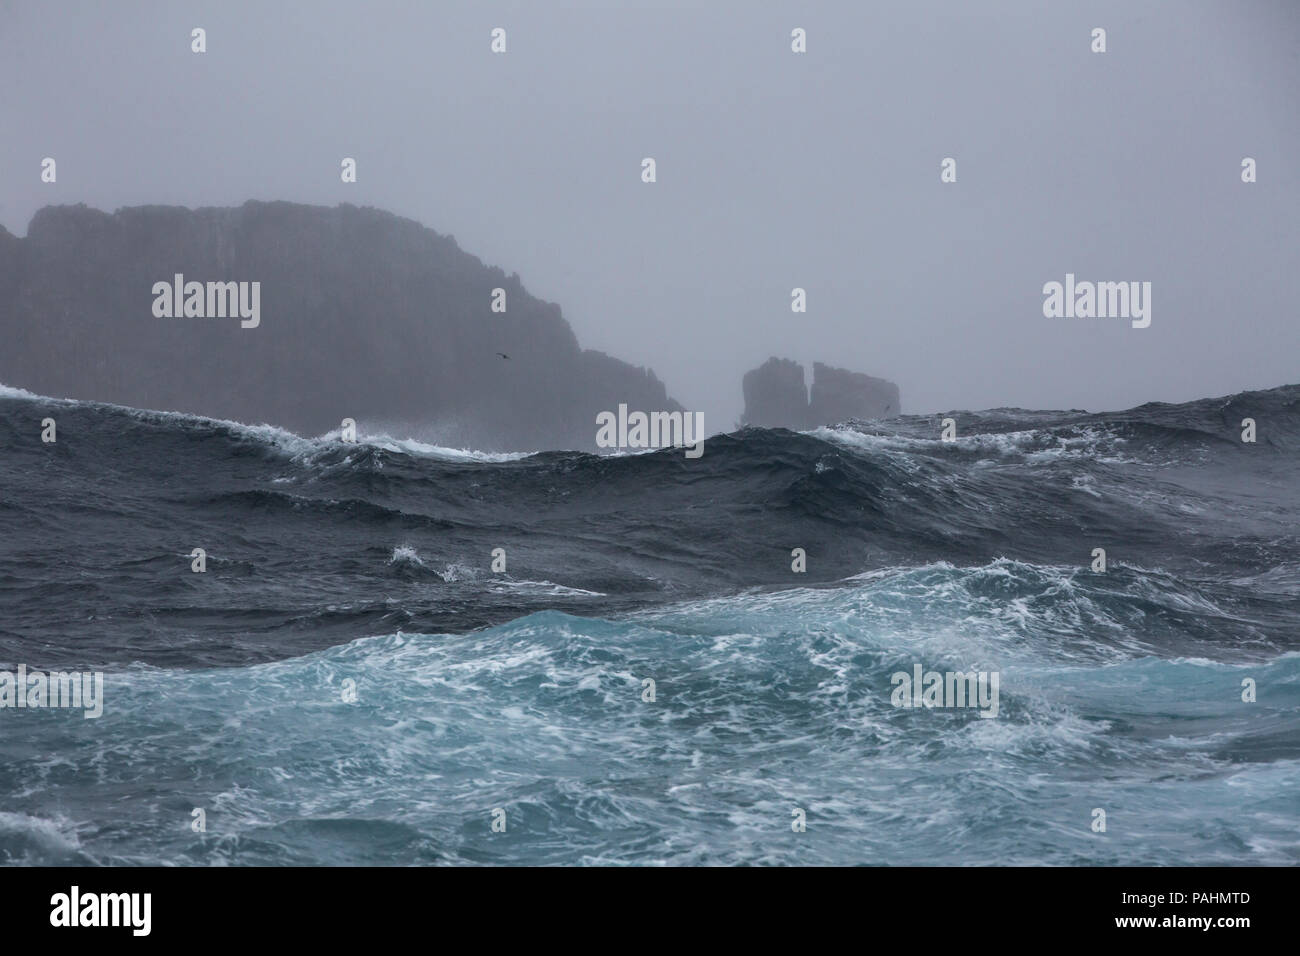 Storm at the Snares Islands, New Zealand - Stock Image